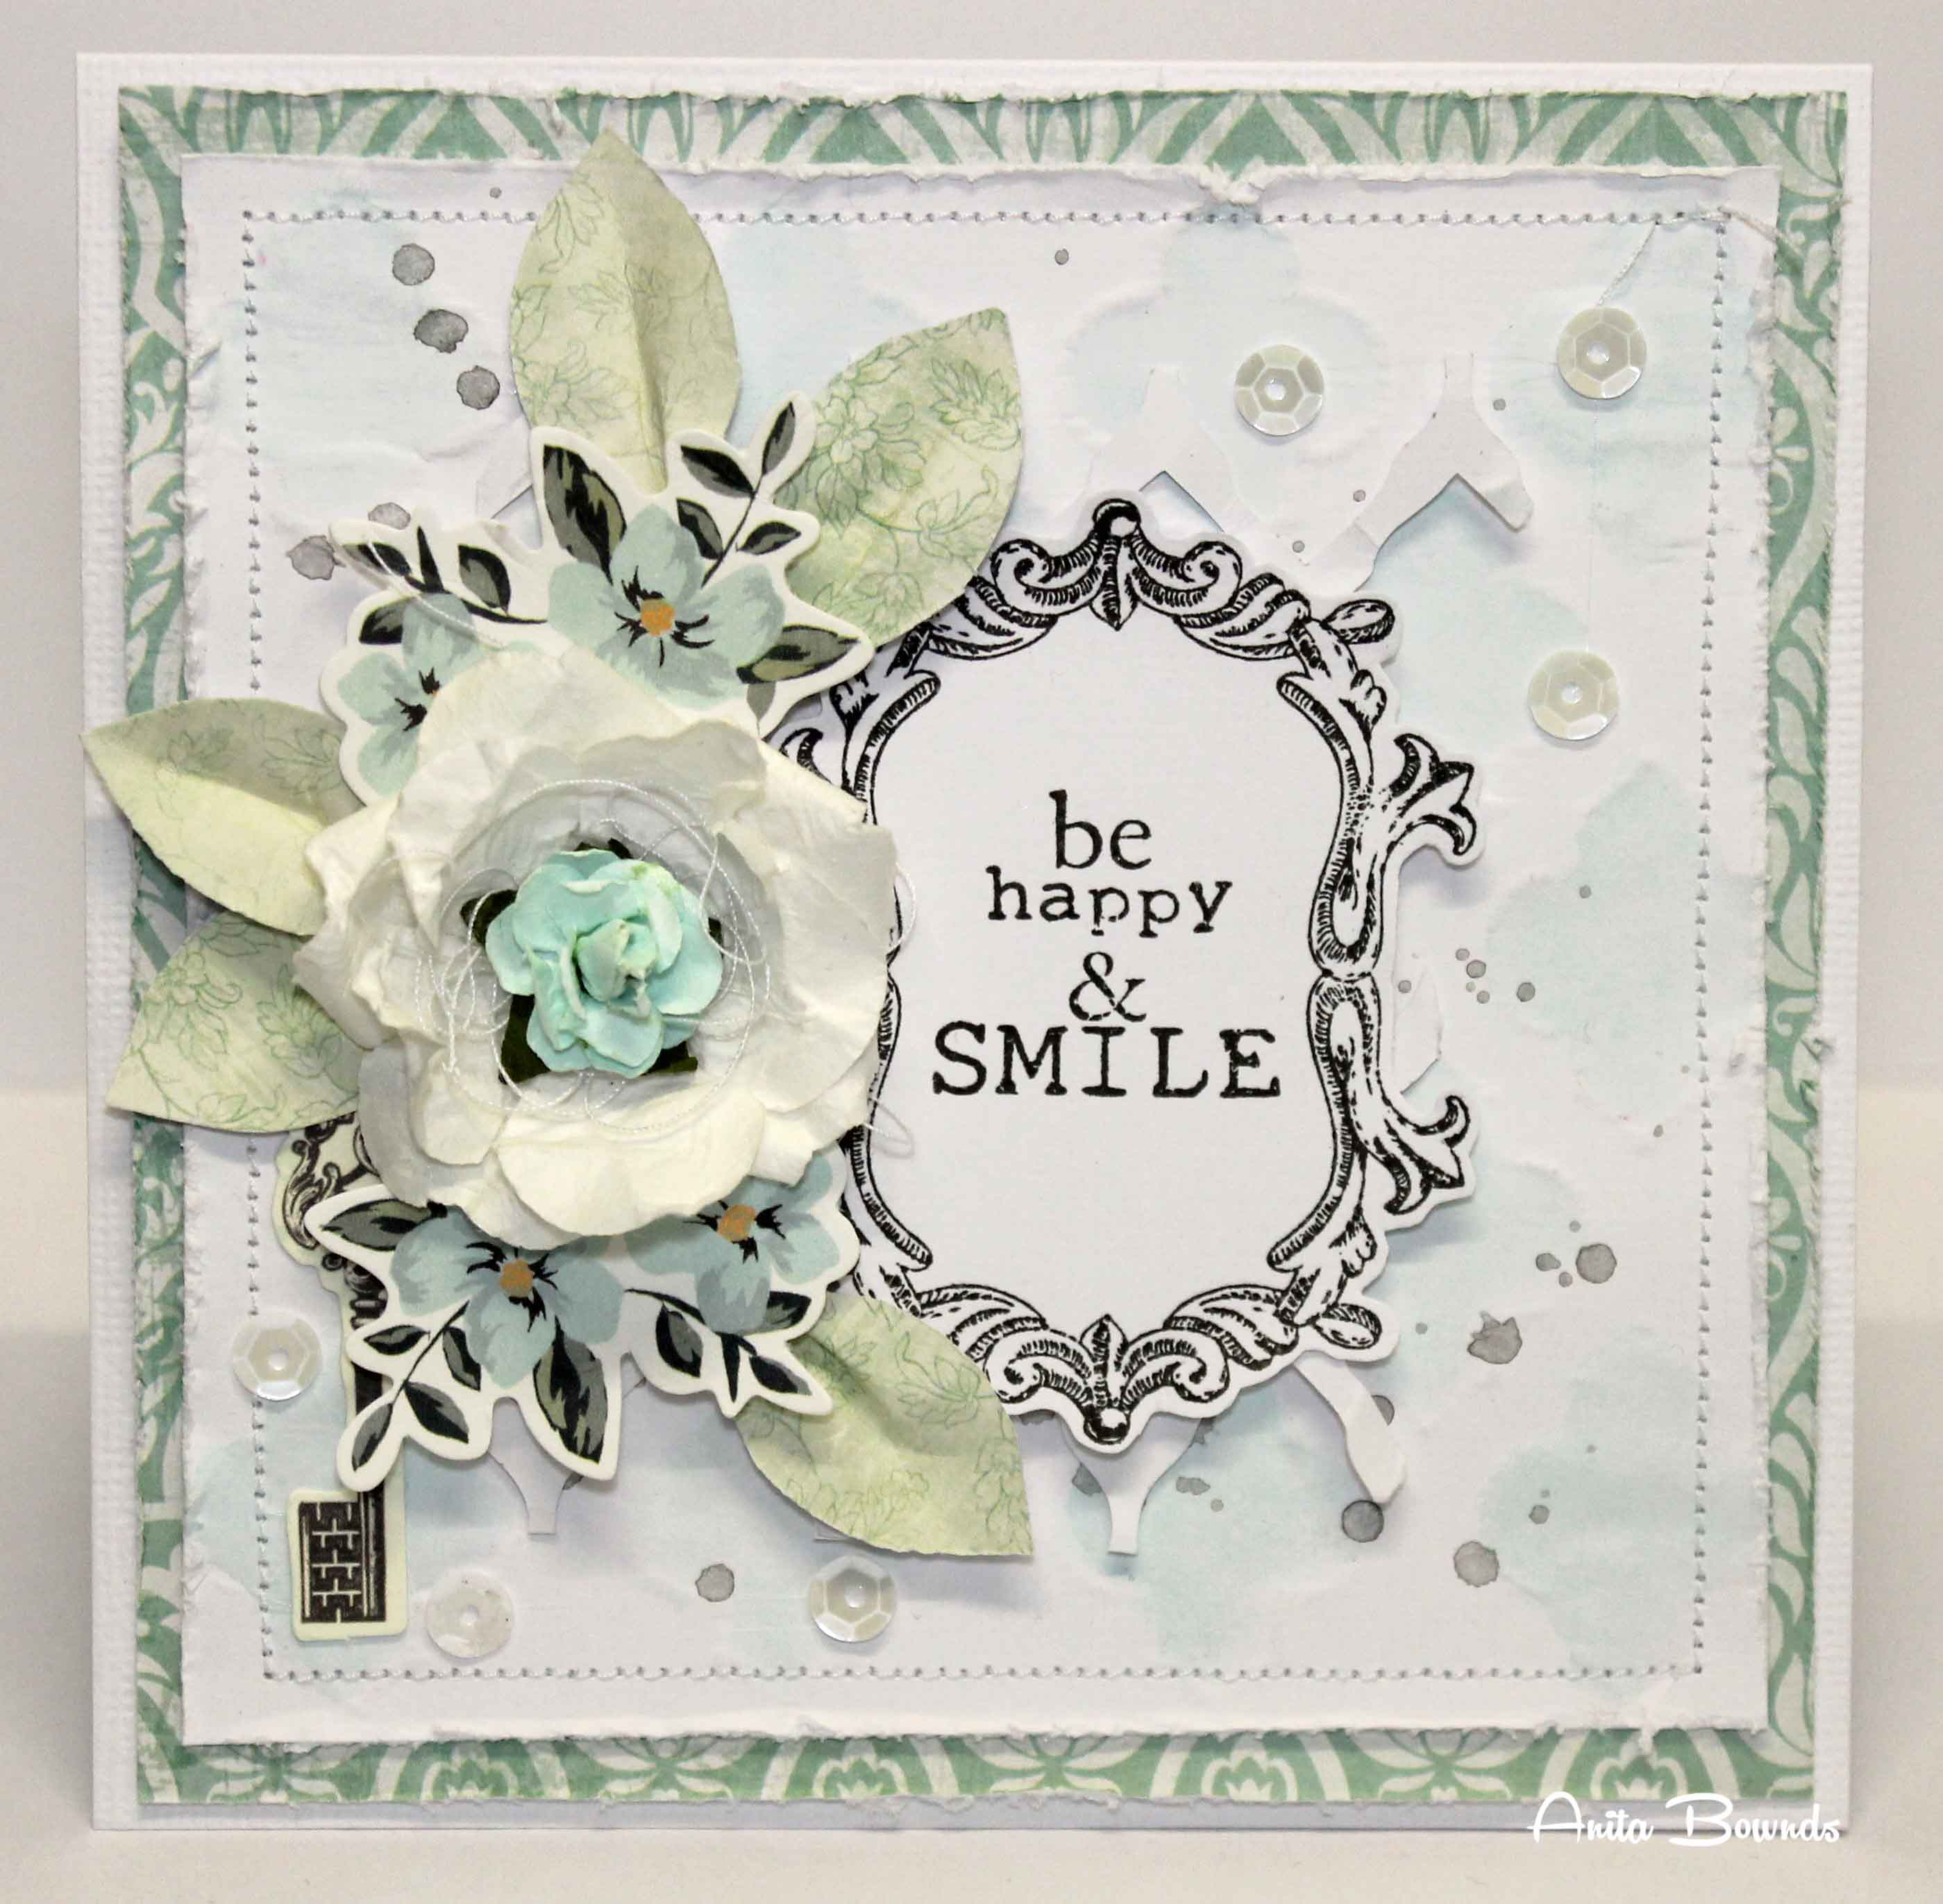 Be Happy & smile card - Anita Bownds may 2014 Scrapfx Dt